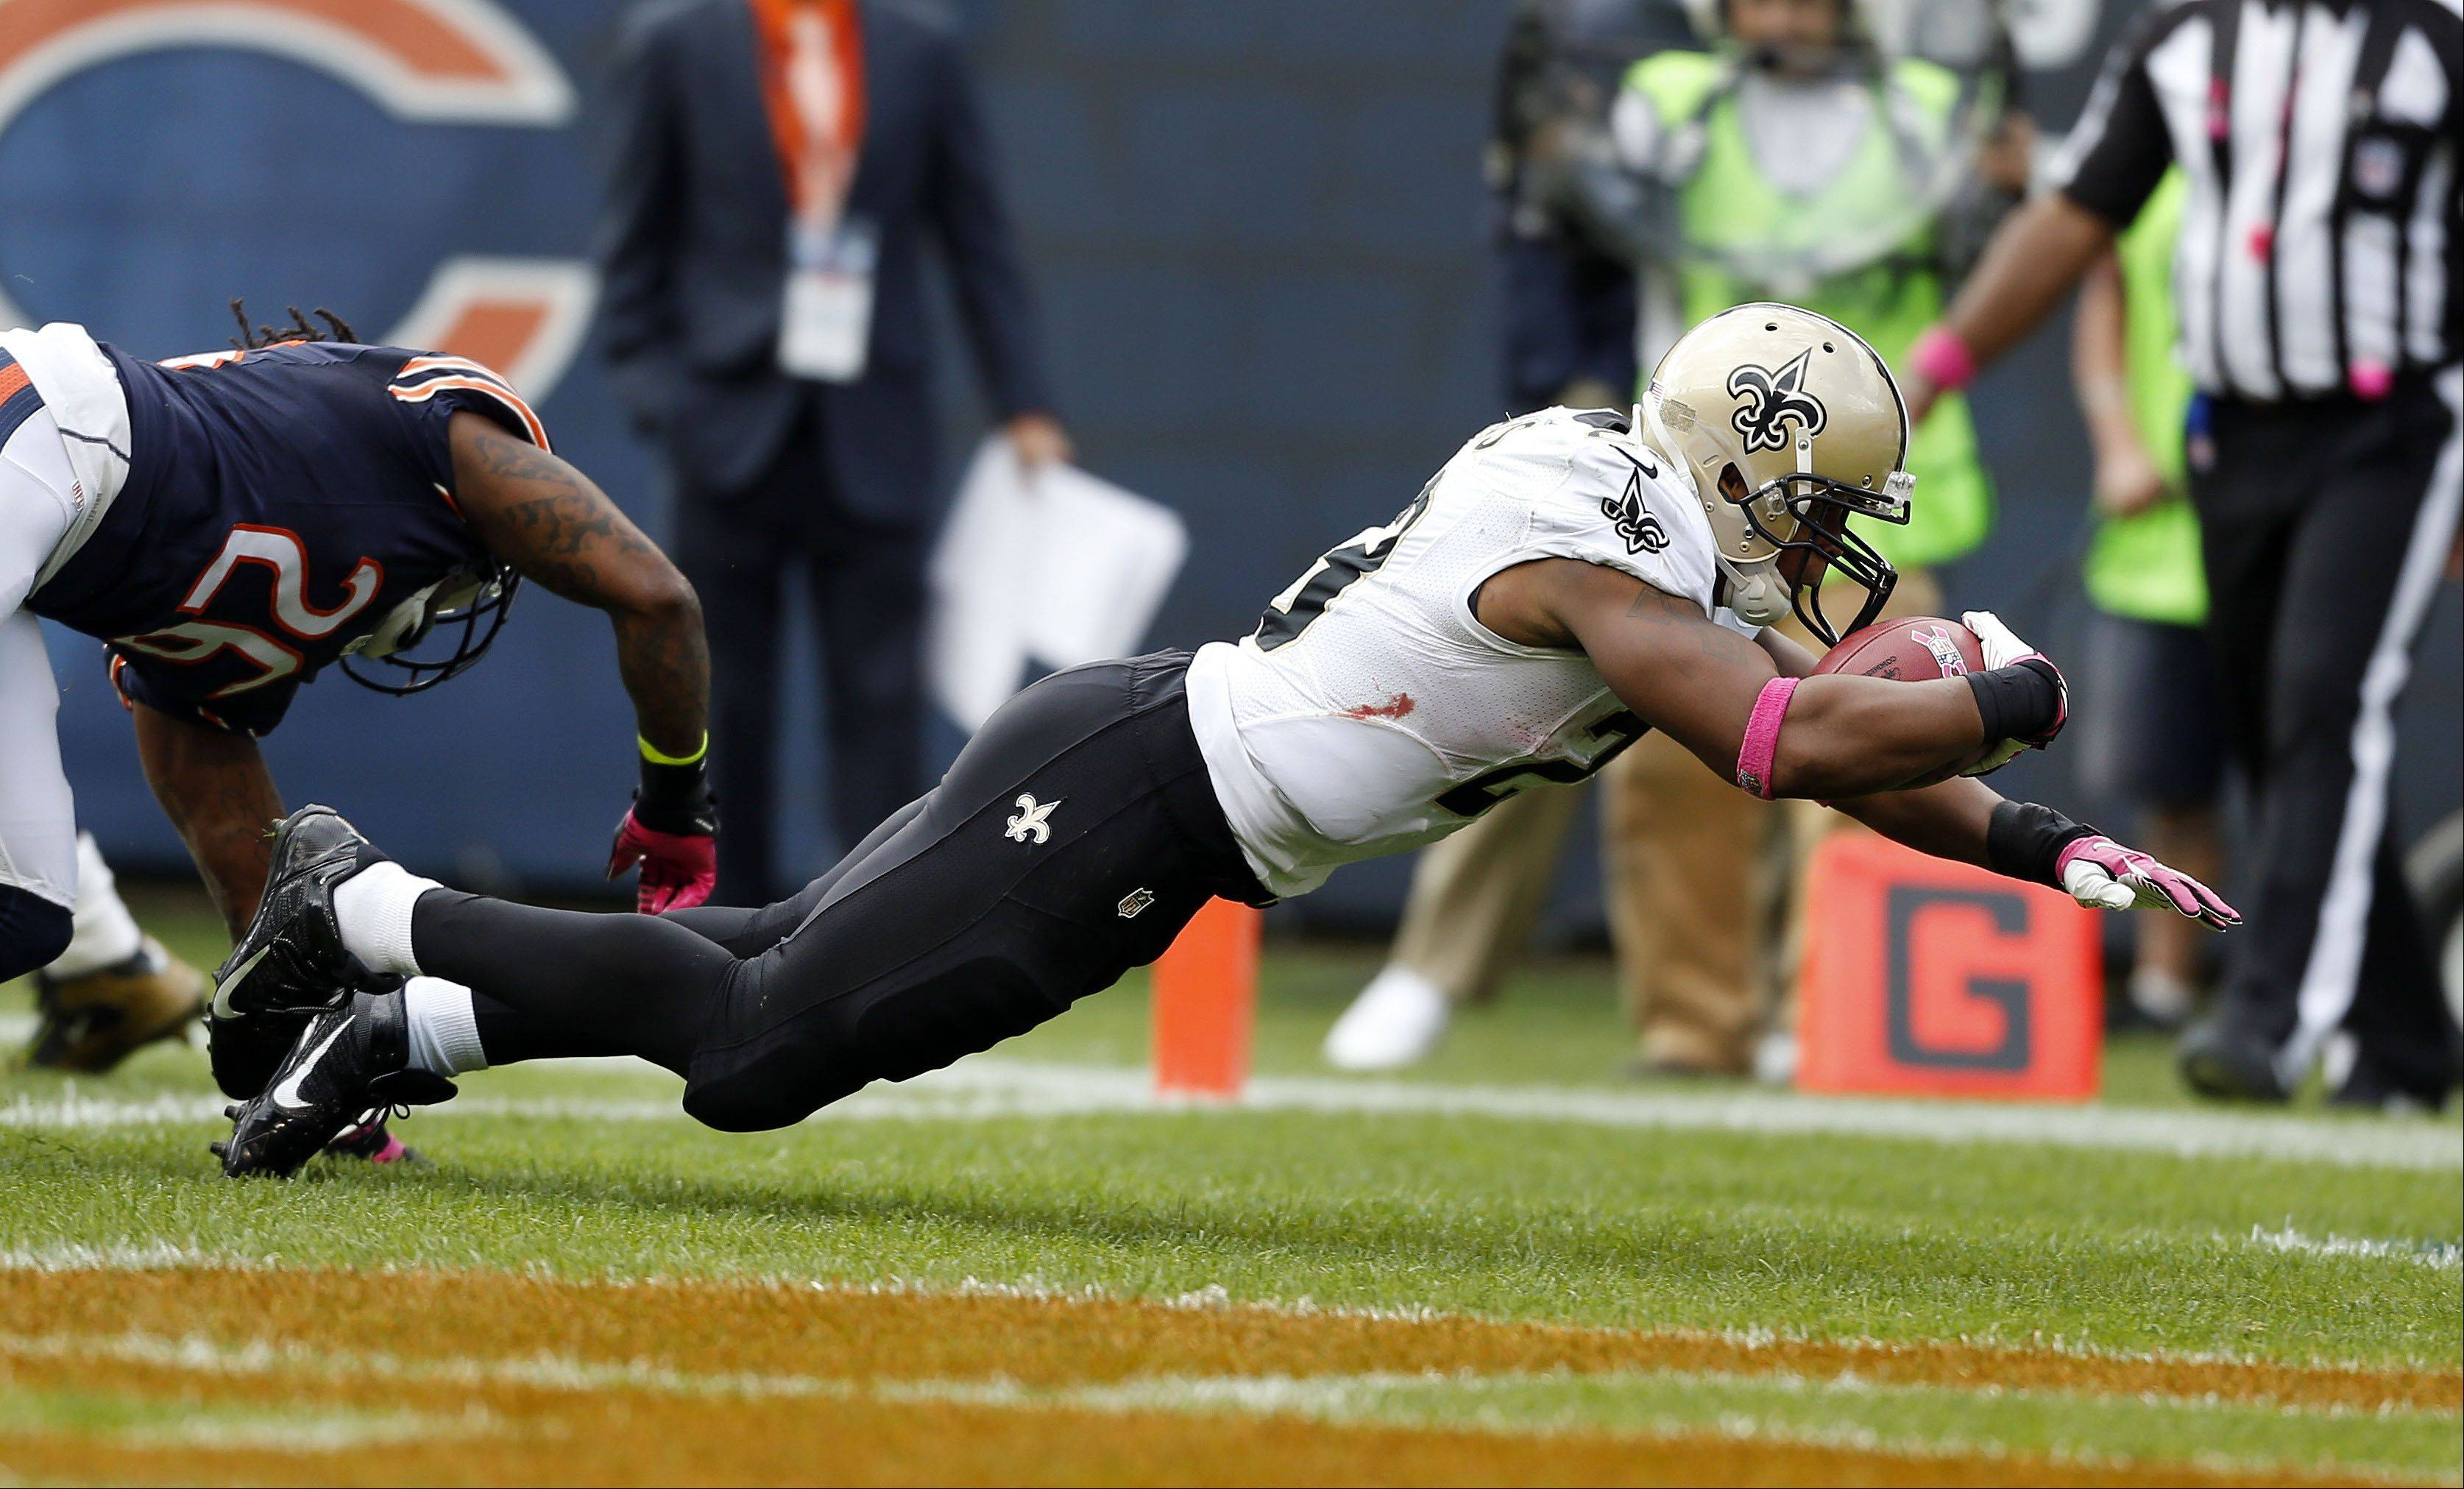 New Orleans Saints running back Pierre Thomas dives in for a score during the Bears 26-18 loss to the New Orleans Saints Sunday.